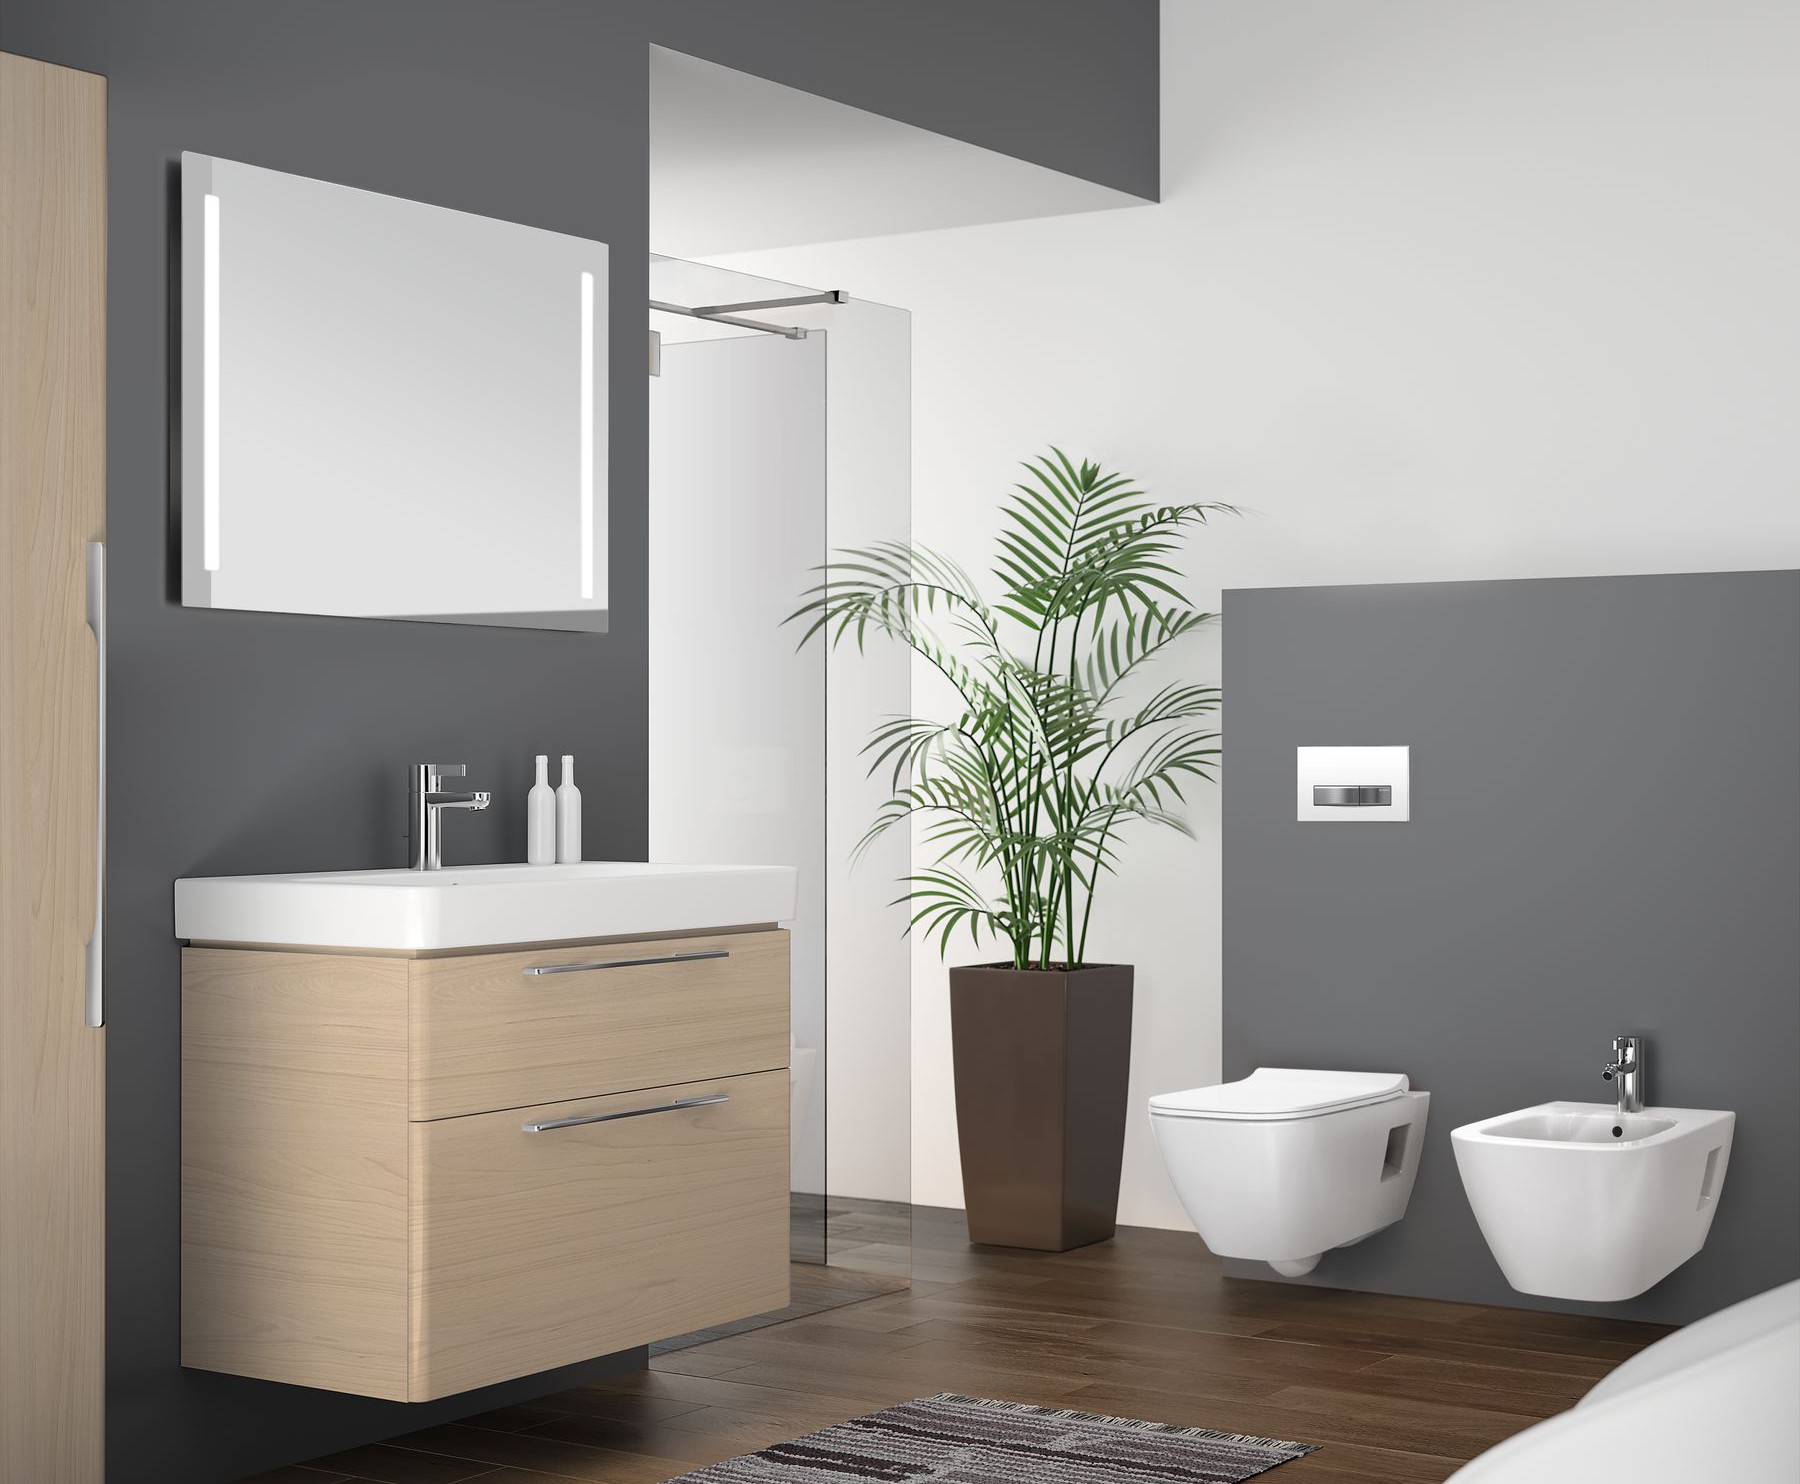 gerberit-smyle-bathroom-setting